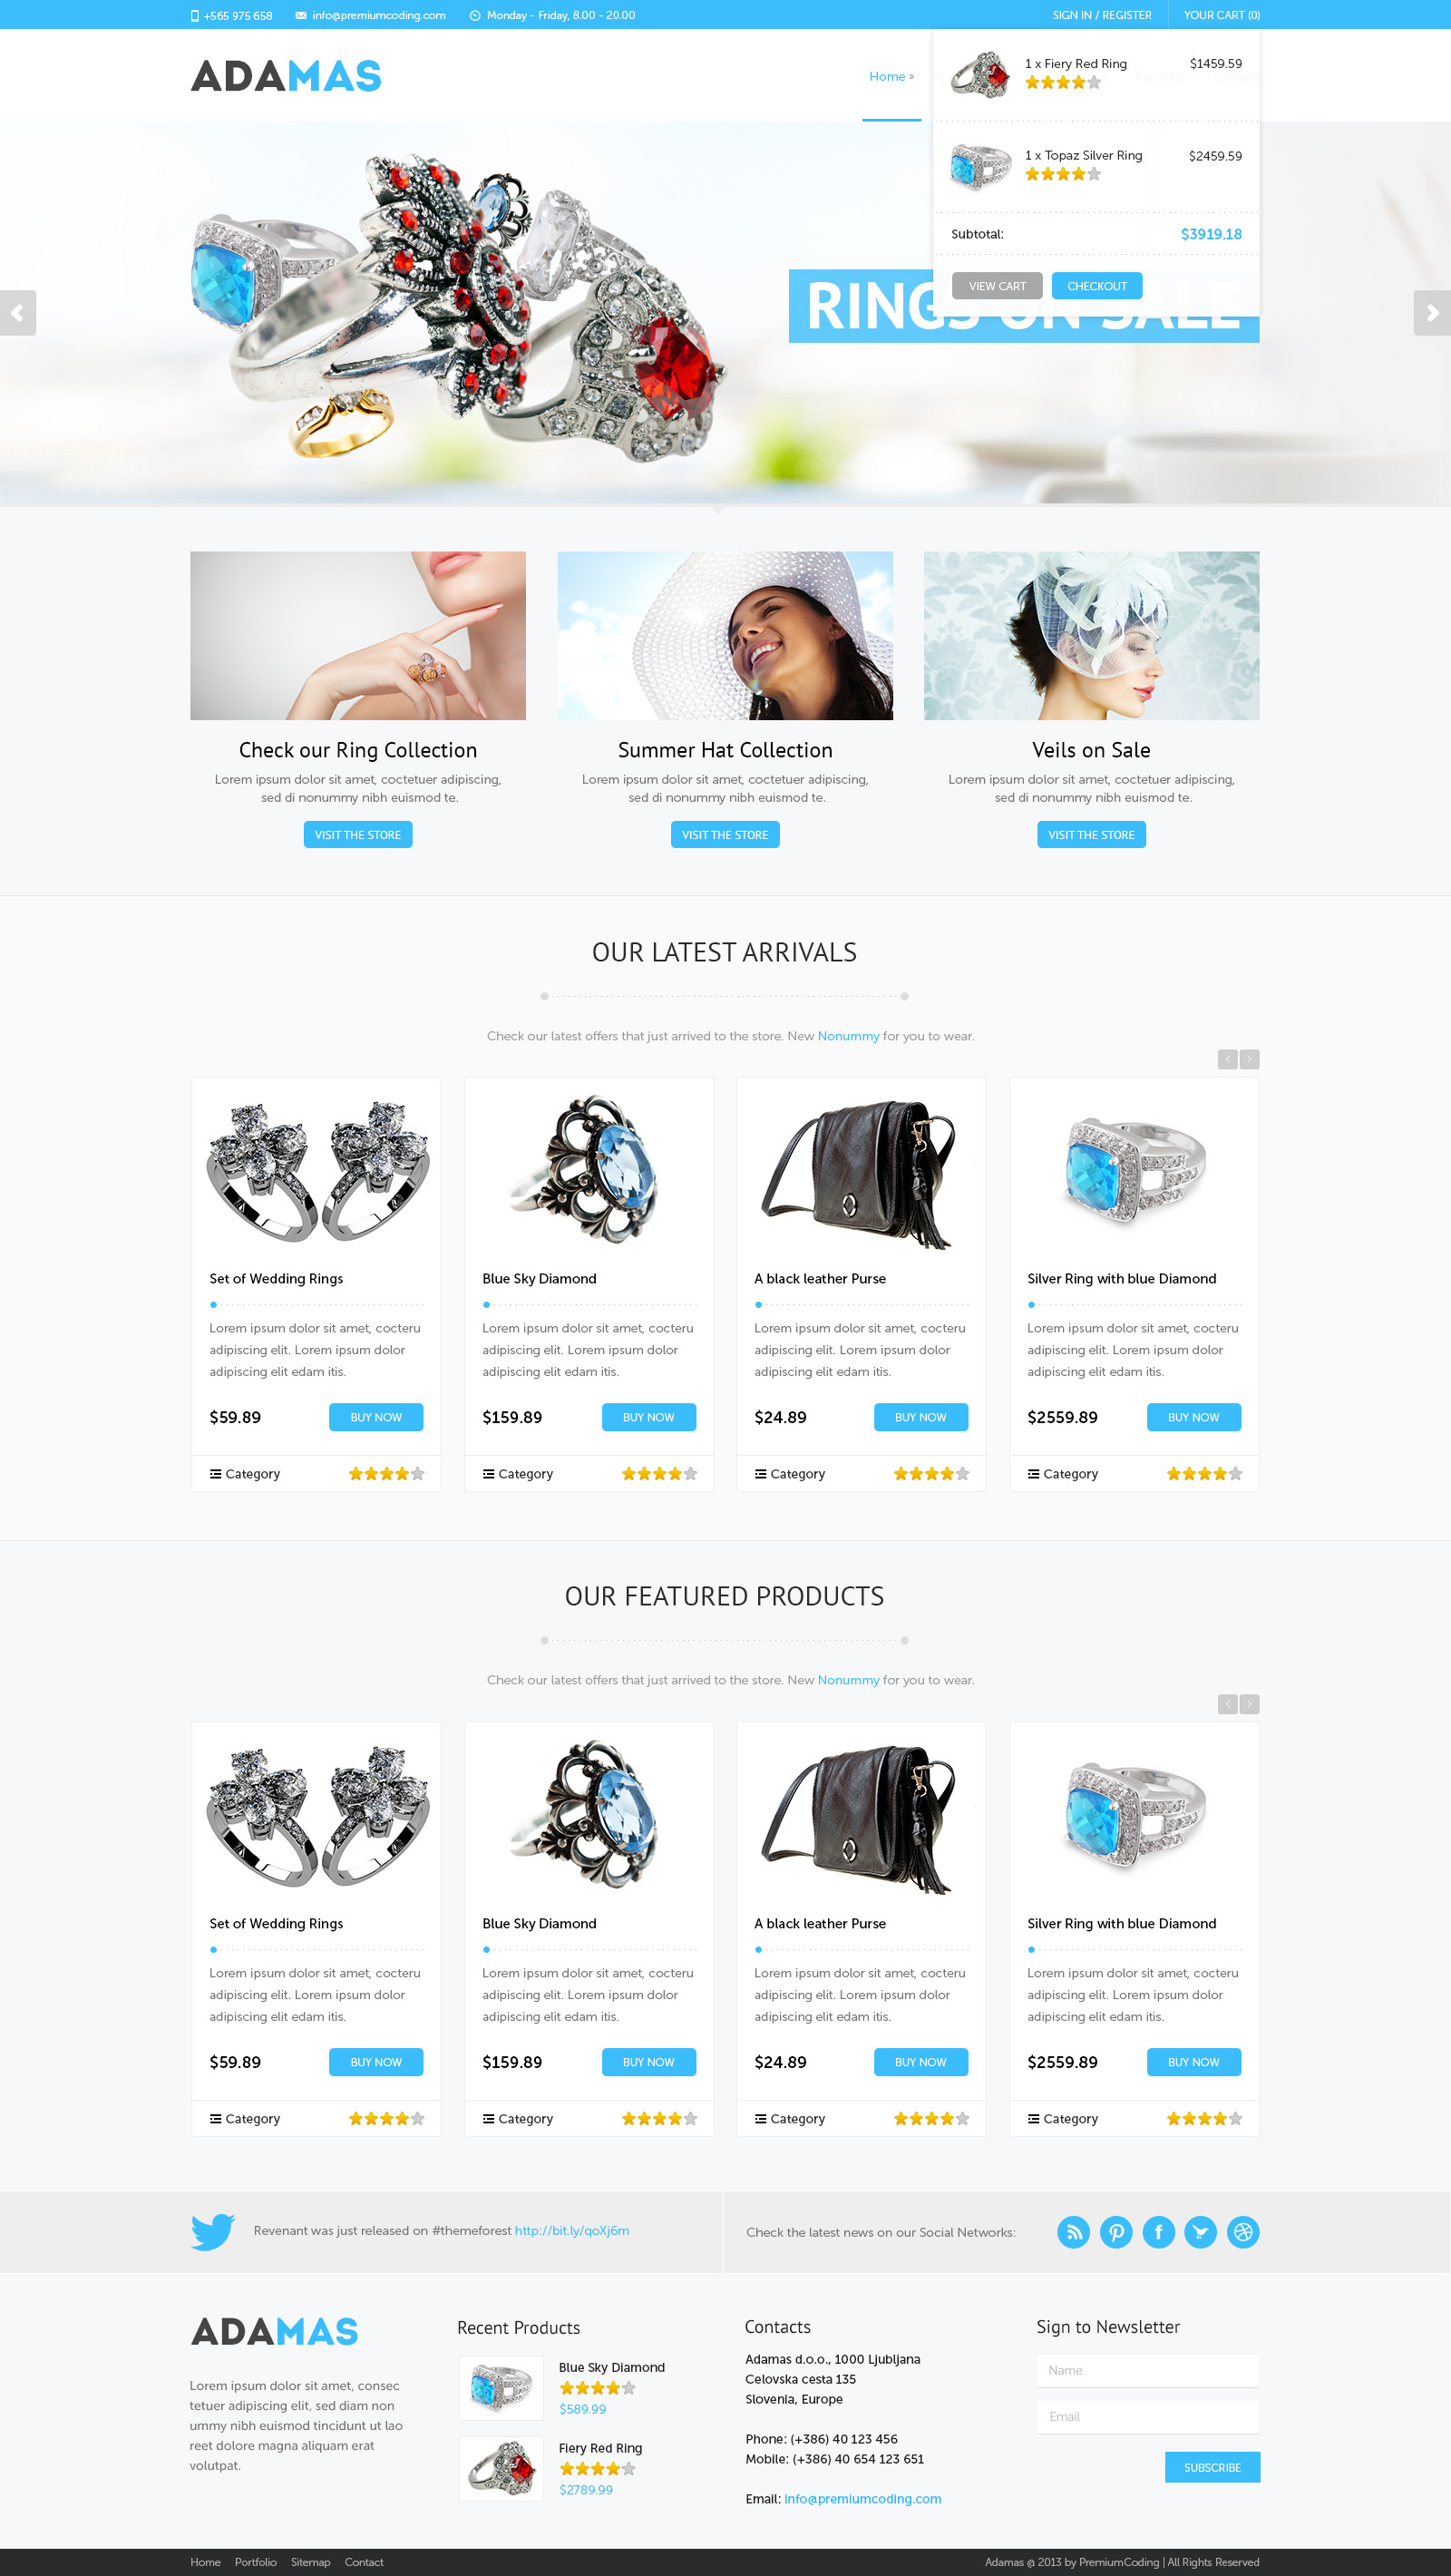 Freebie: Adamas Ecommerce Website PSD Template - PremiumCoding